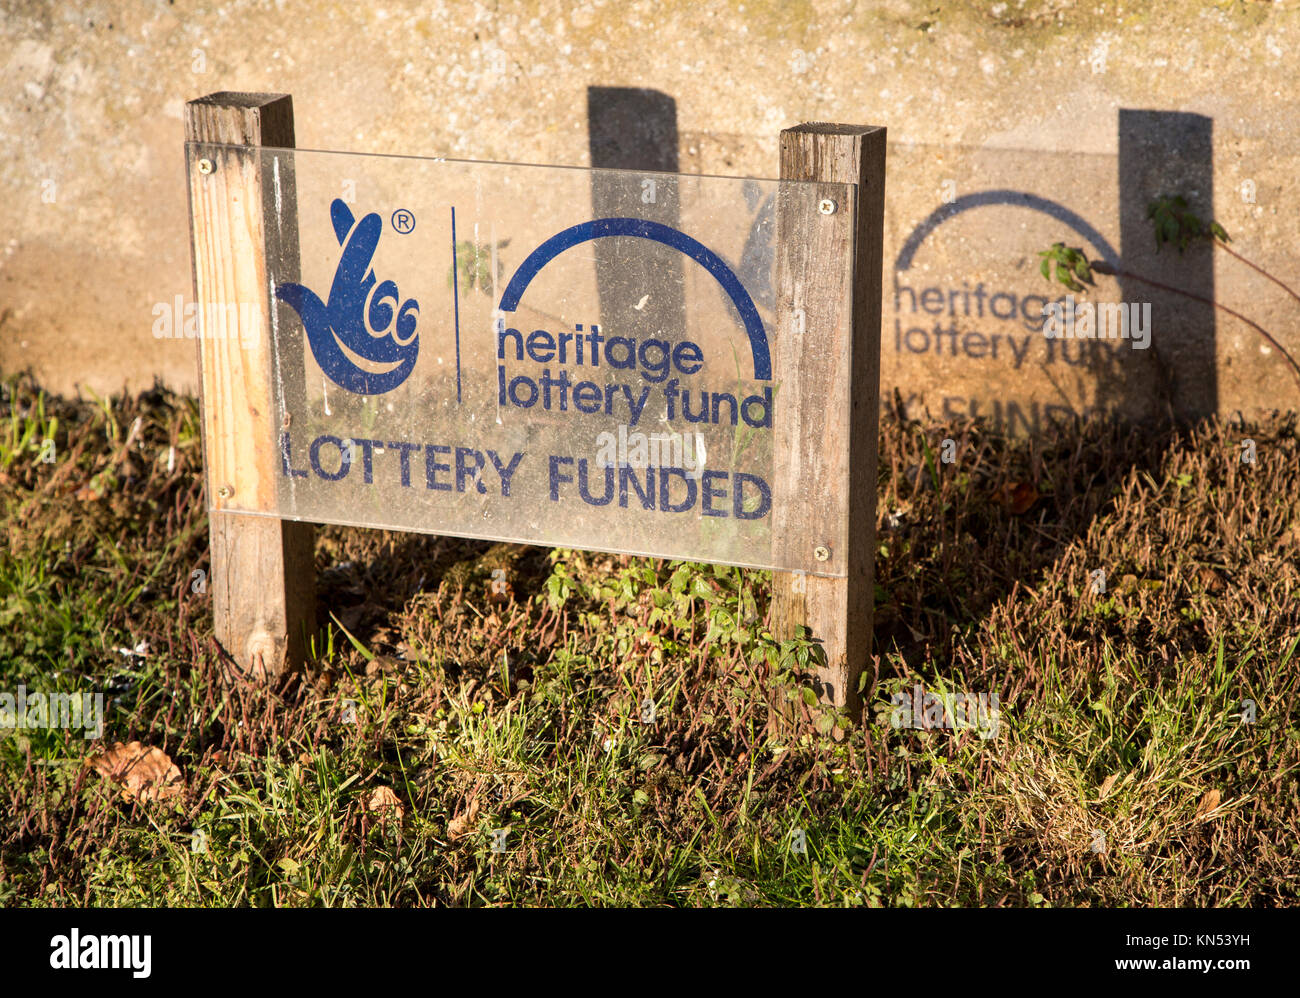 Sign in front of wall showing funding from Heritage National Lottery Fund, Suffolk, England, UK - Stock Image